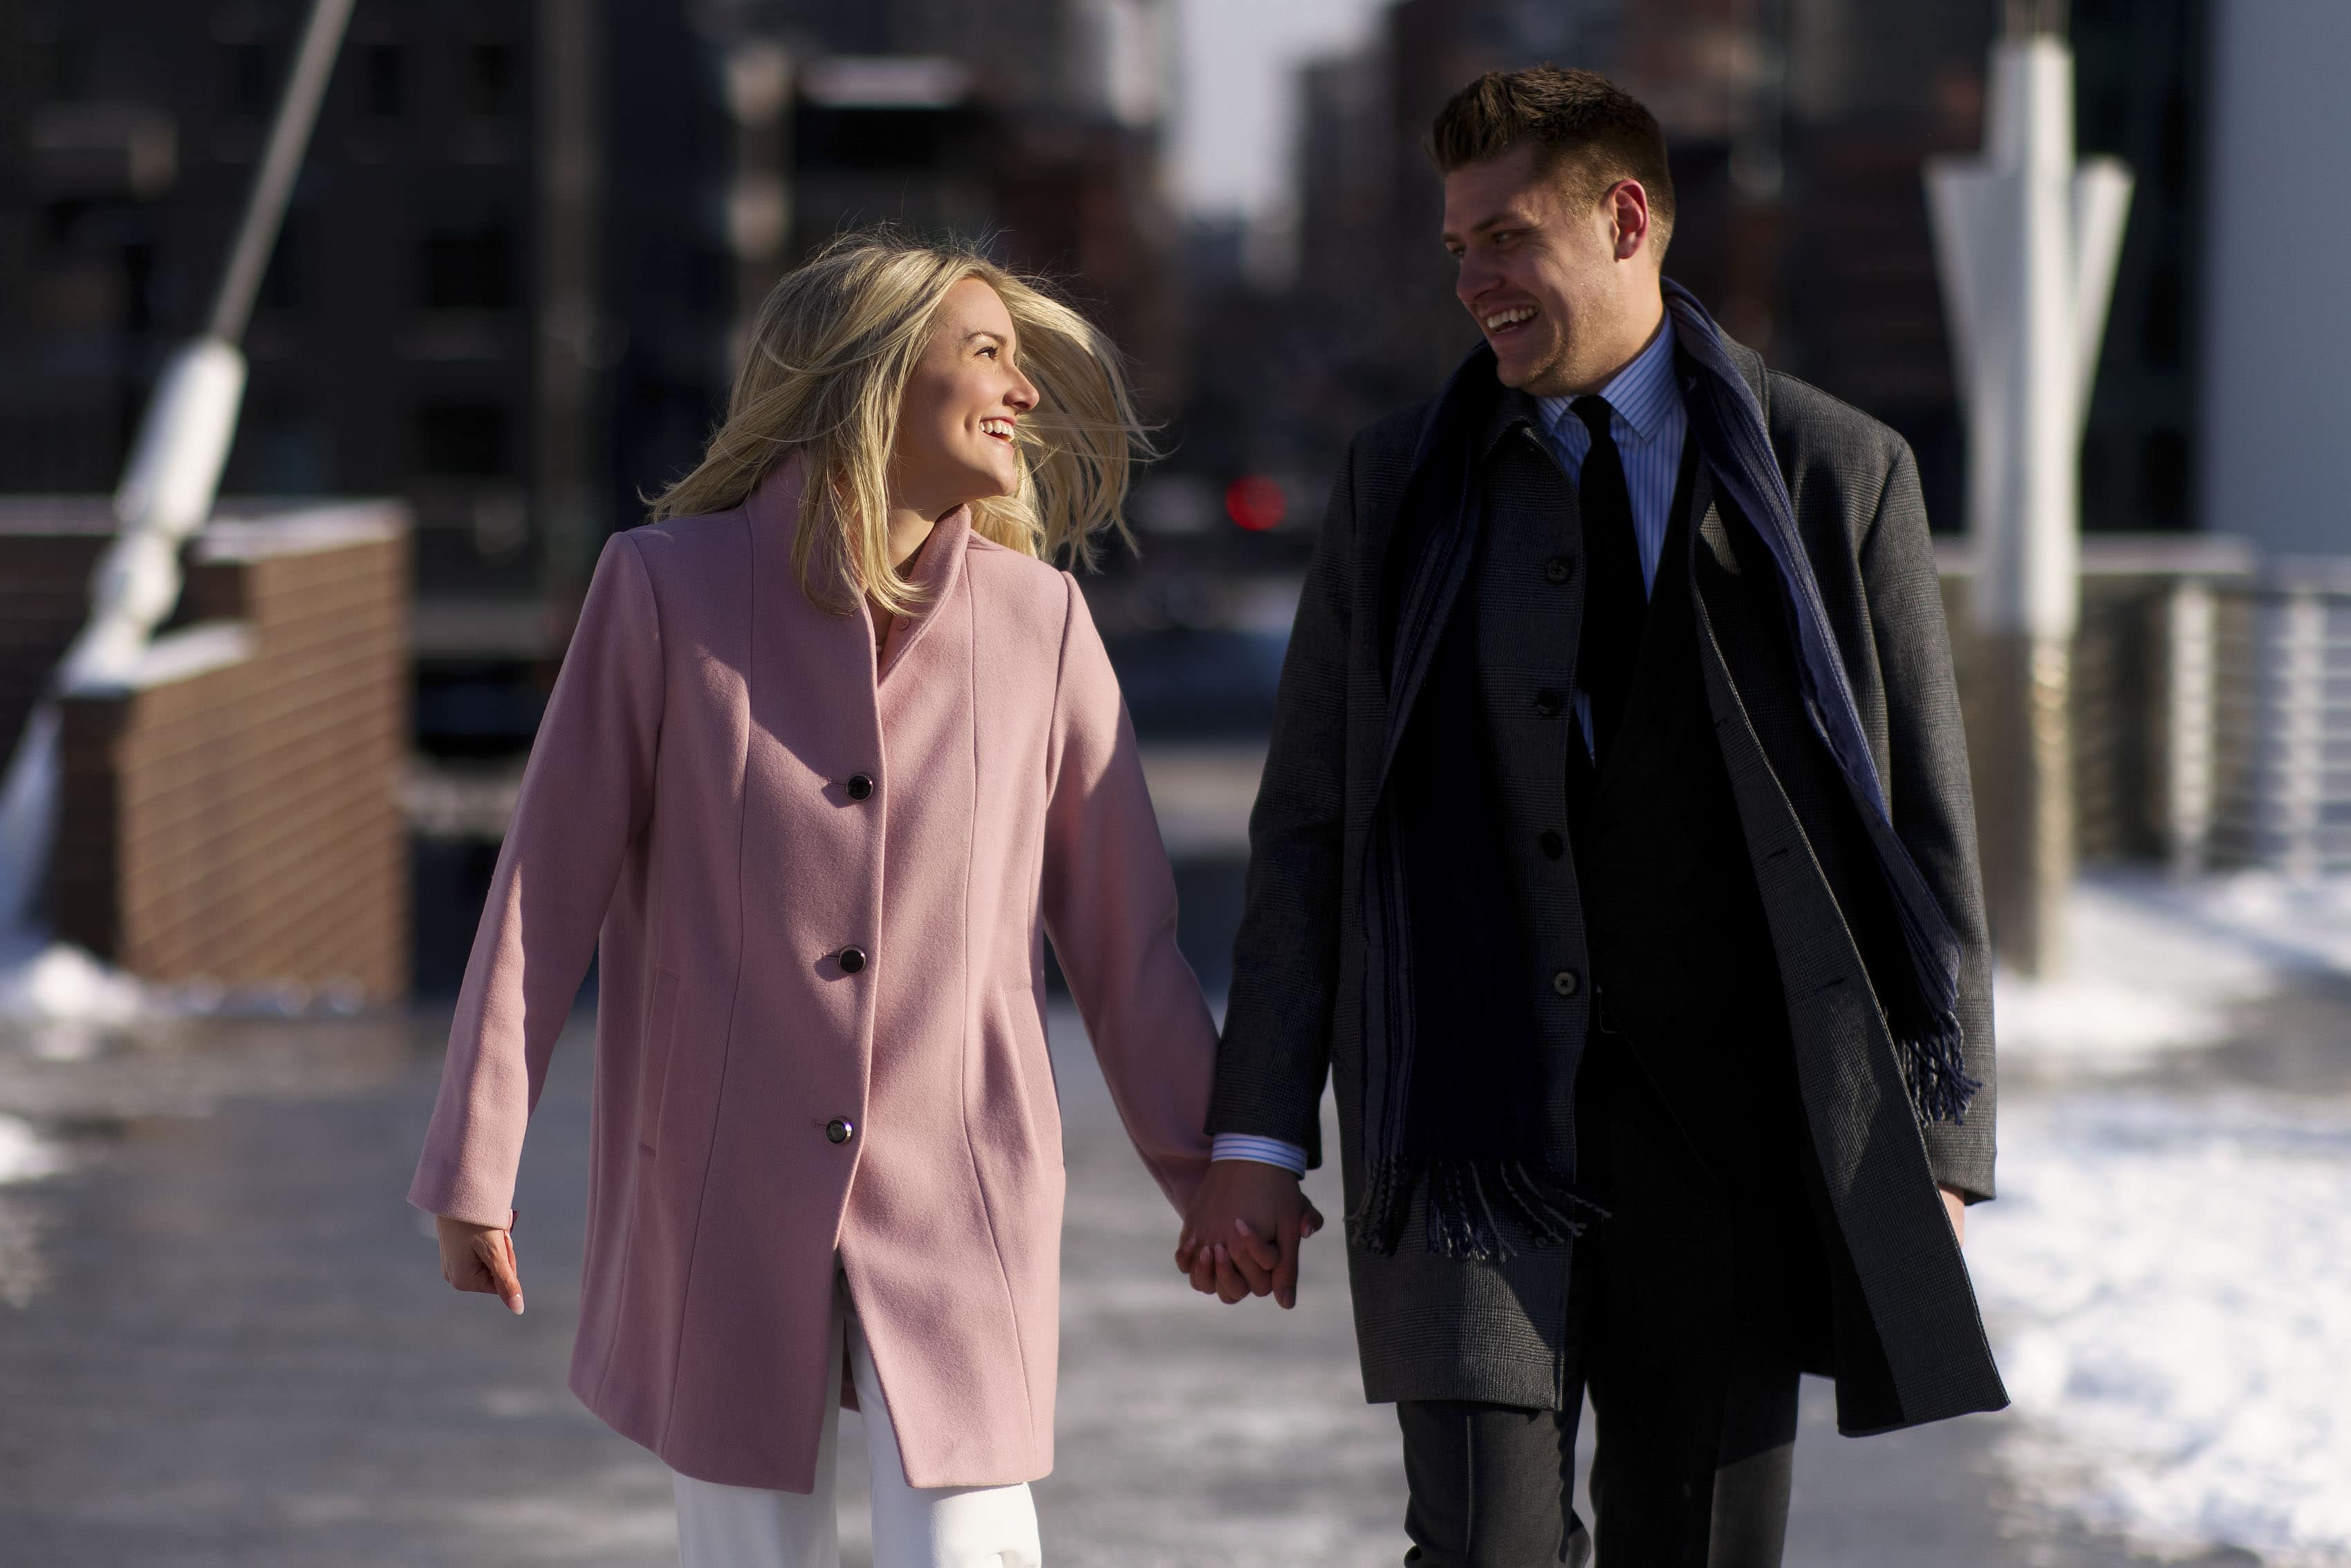 Kelly and Willy walk together after their valentines day proposal in downtown Denver